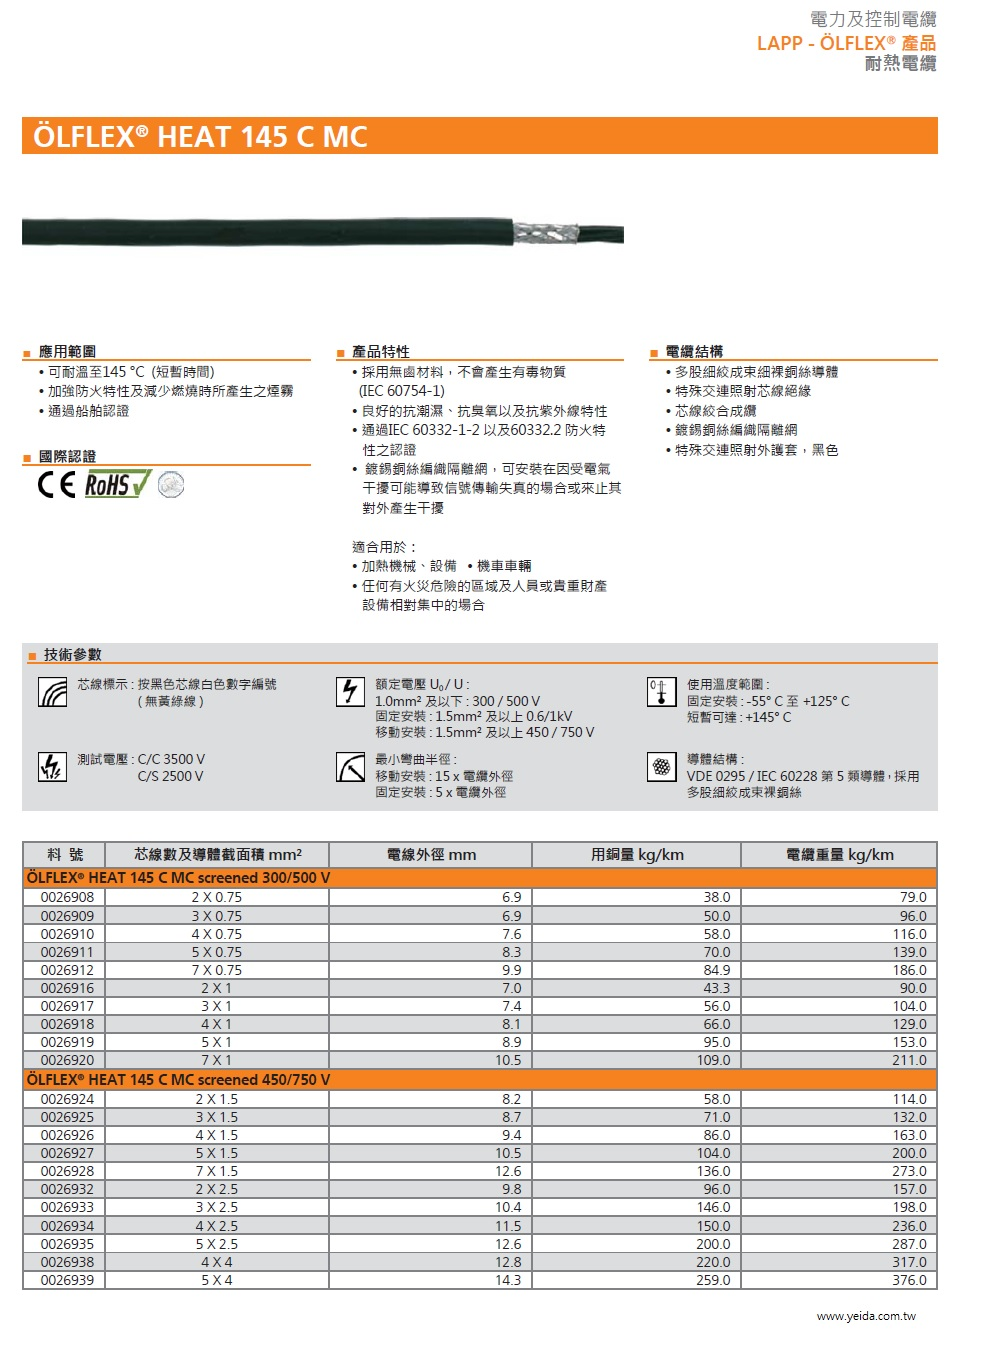 LAPP-OLFLEX® HEAT 145 C MC Series Shielded Highly Flame Retardant and Temperature Resistant Cable鍍錫銅絲編織隔離耐燃耐熱無鹵電纜產品圖